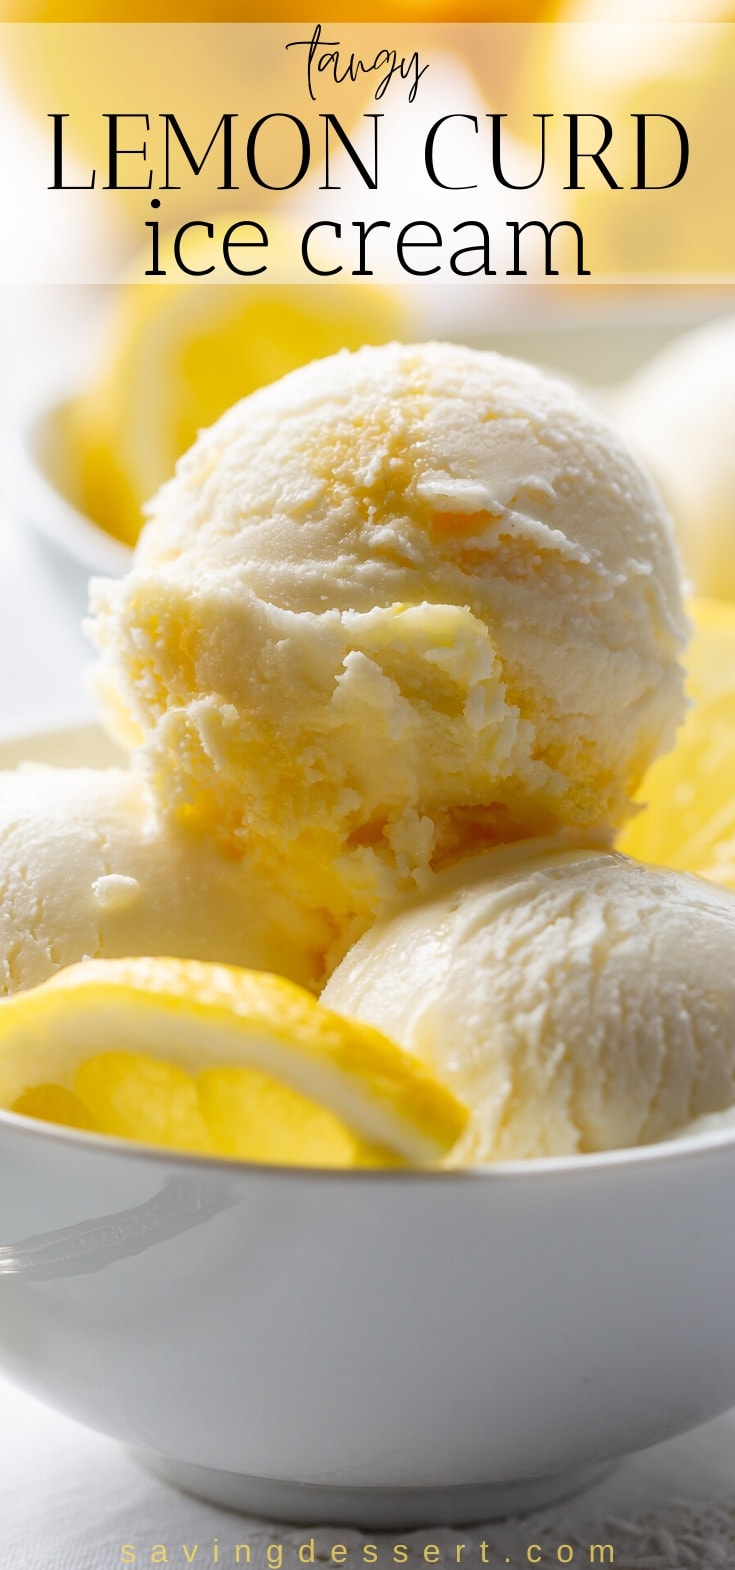 Scoops of lemon curd ice cream in a bowl